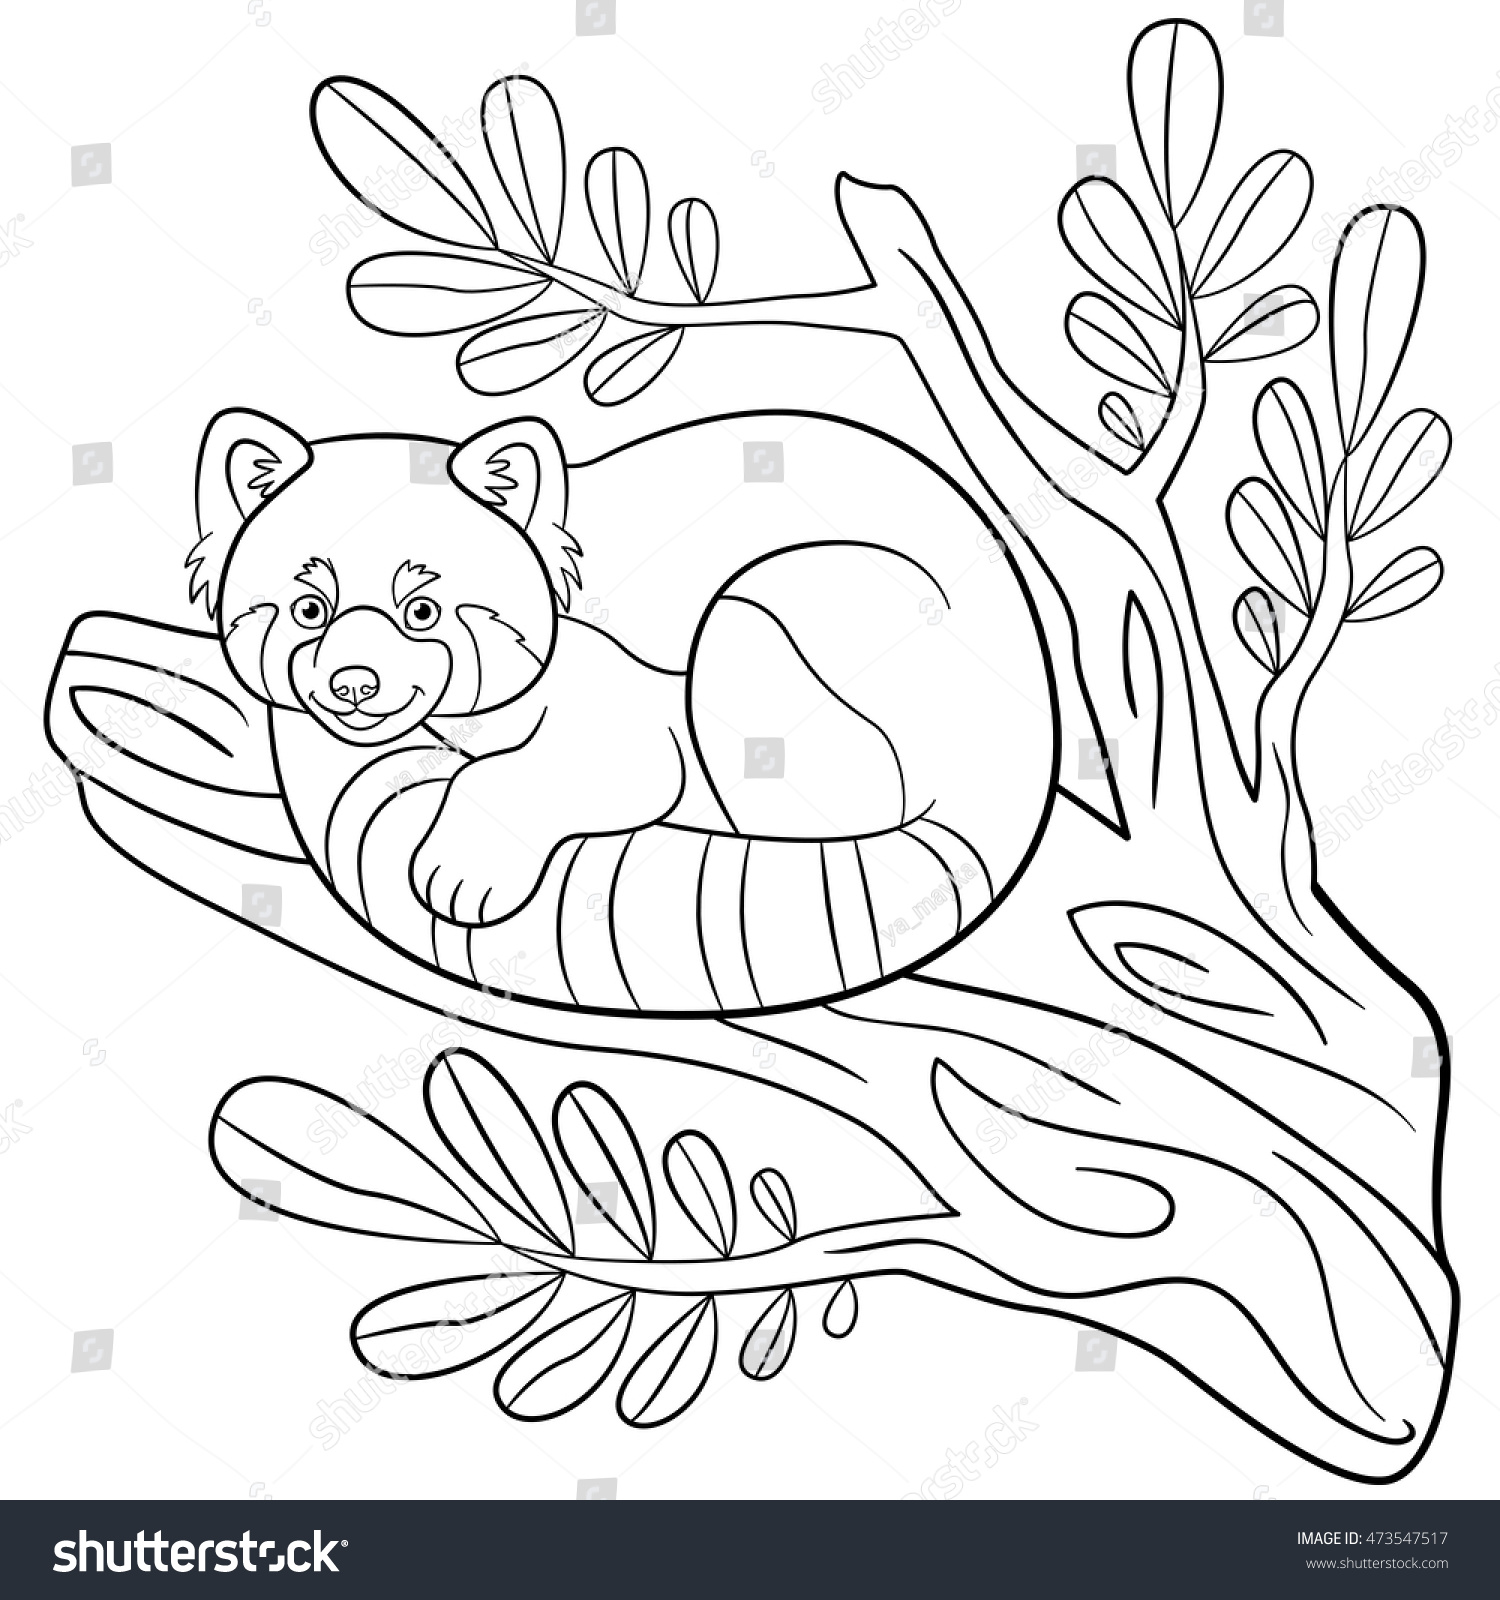 Red Panda Coloring Page Coloring Pages Little Cute Red Panda Stock Vector 473547517